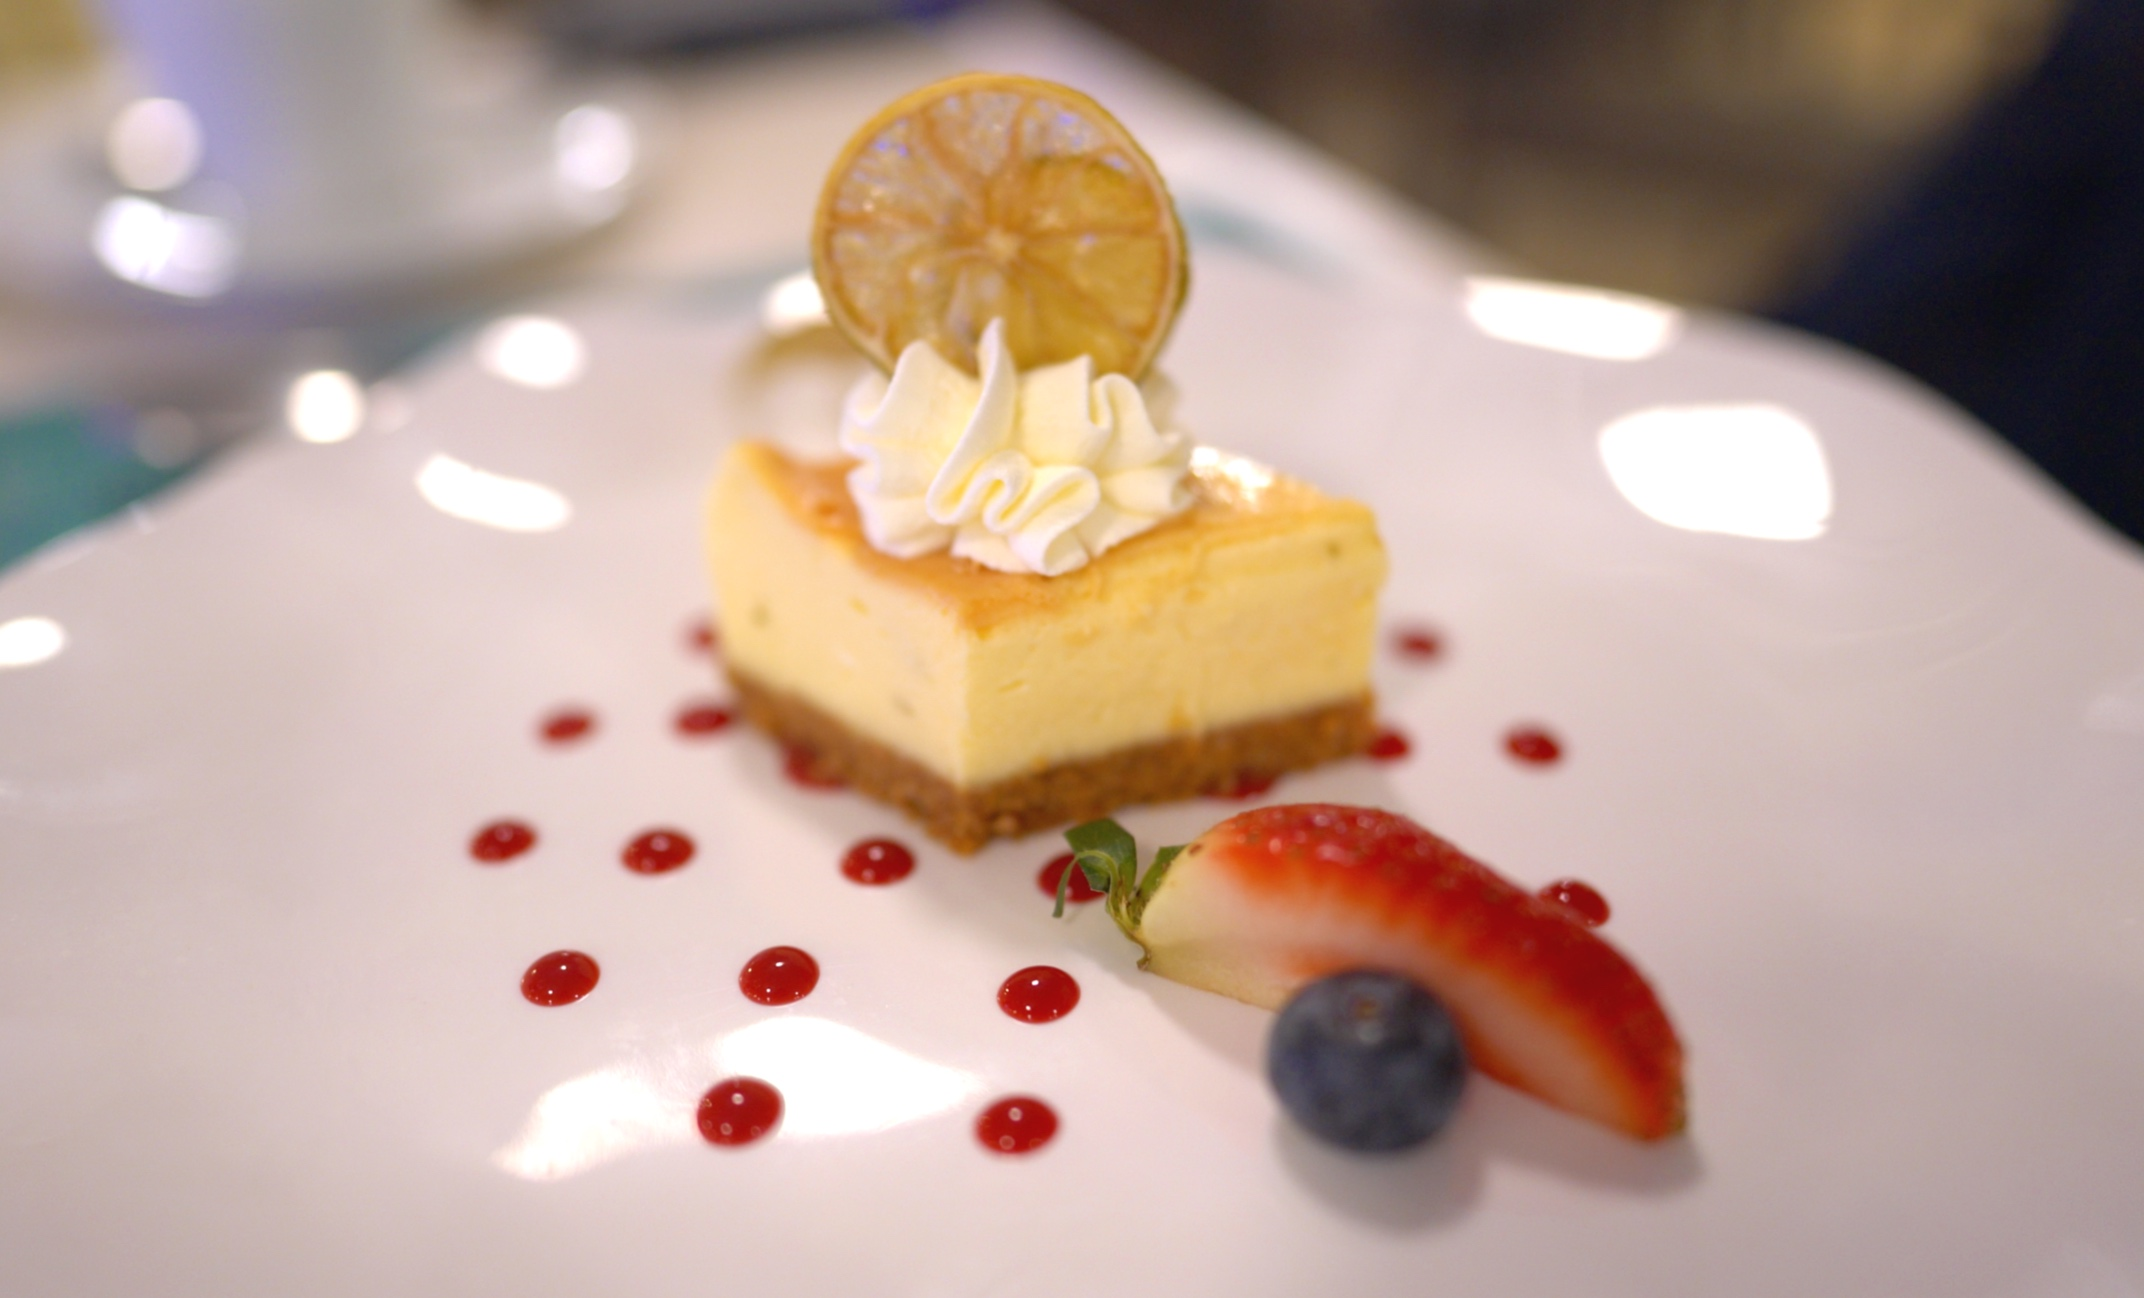 Delicious New York cheesecake.